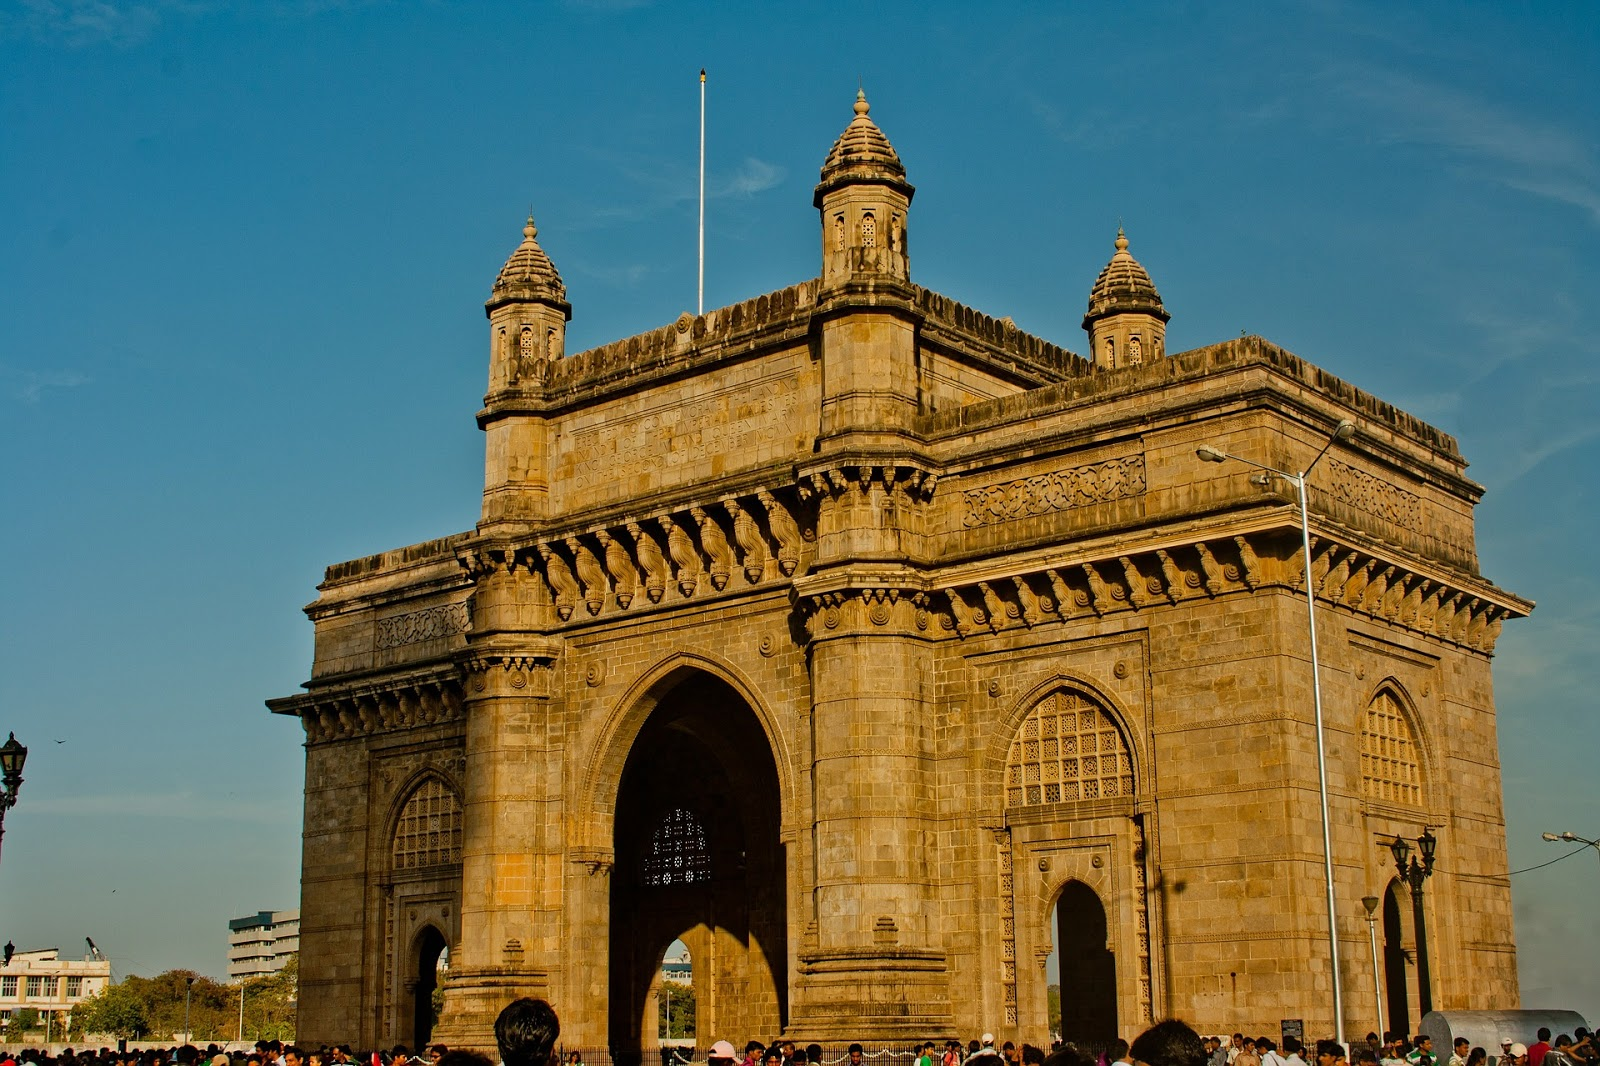 Gateway of india| full updated details about gateway of india 2019